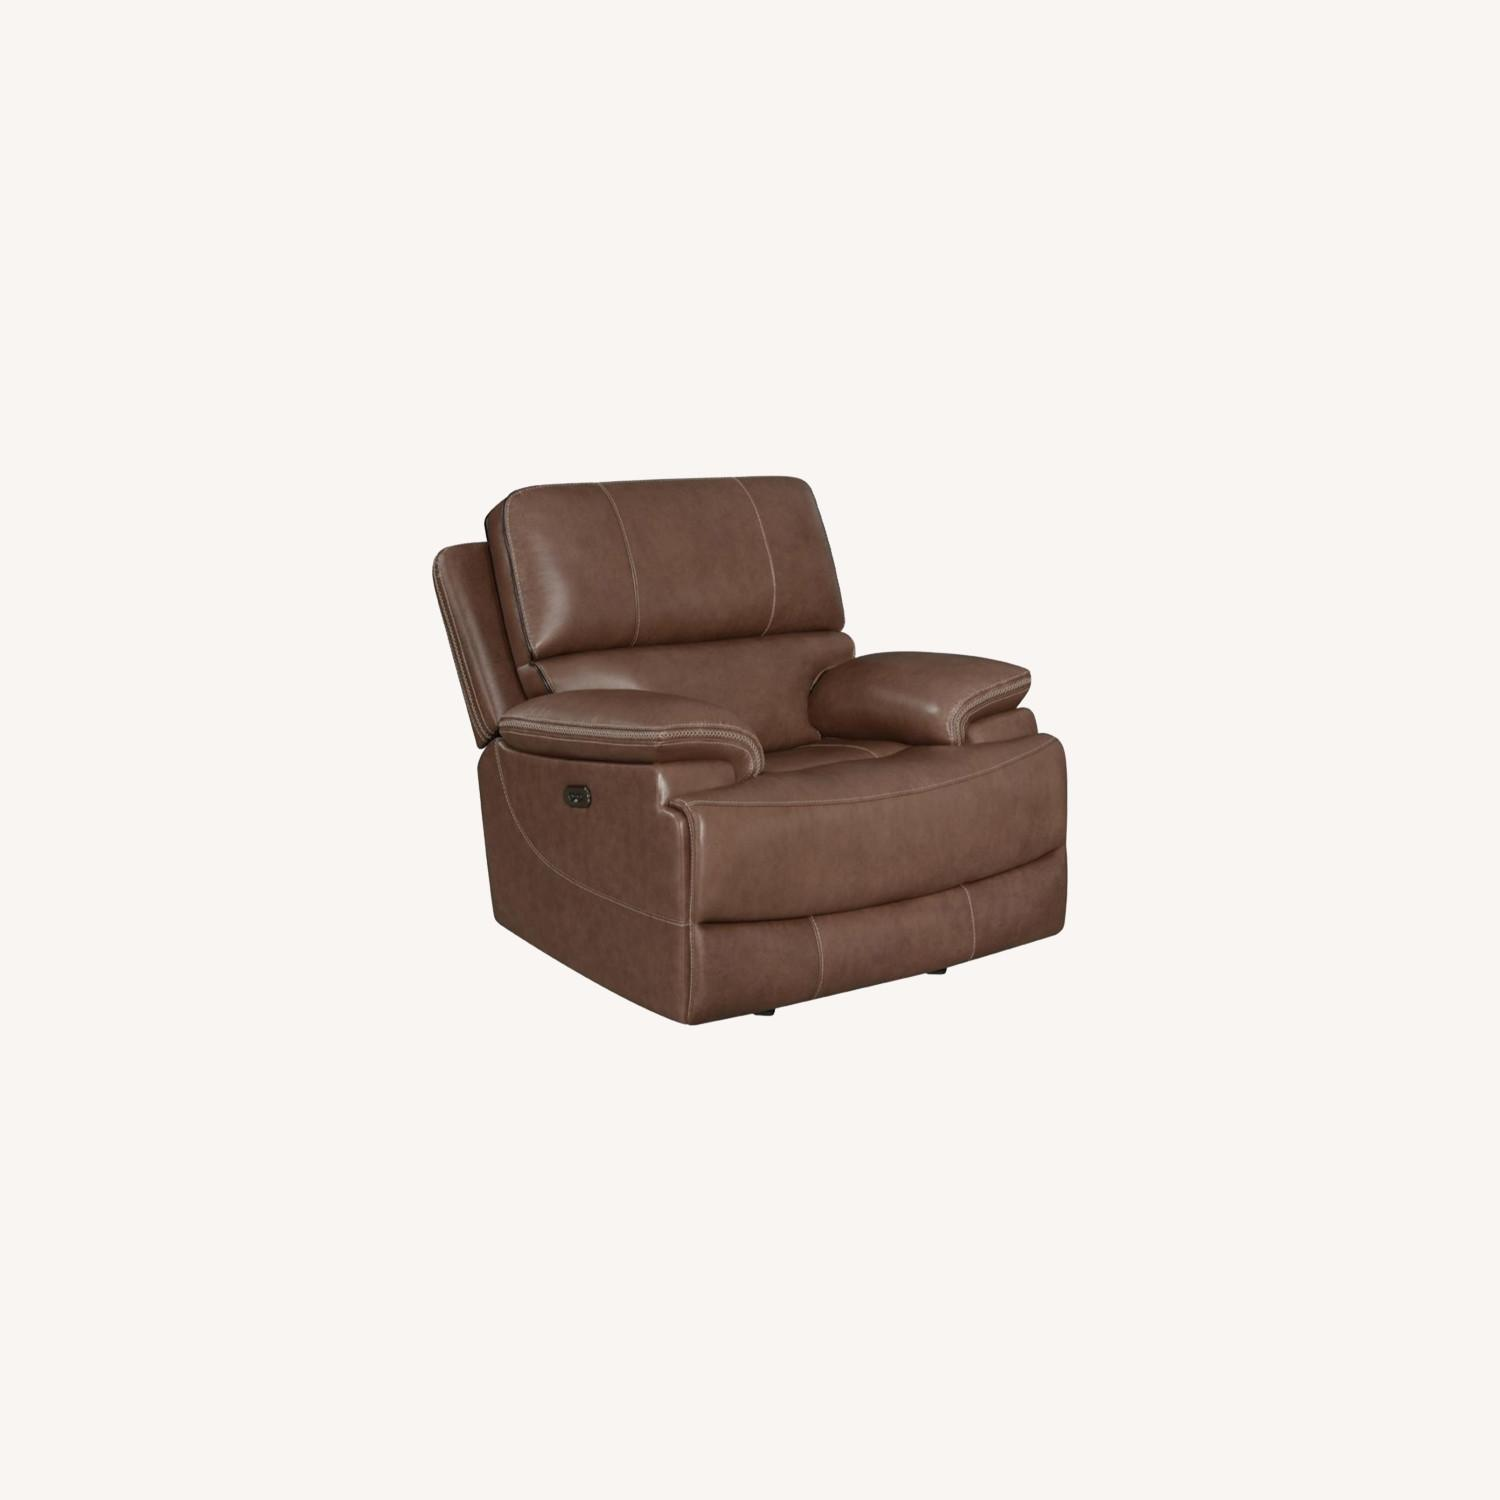 Power Recliner In Saddle Brown Leather - image-7